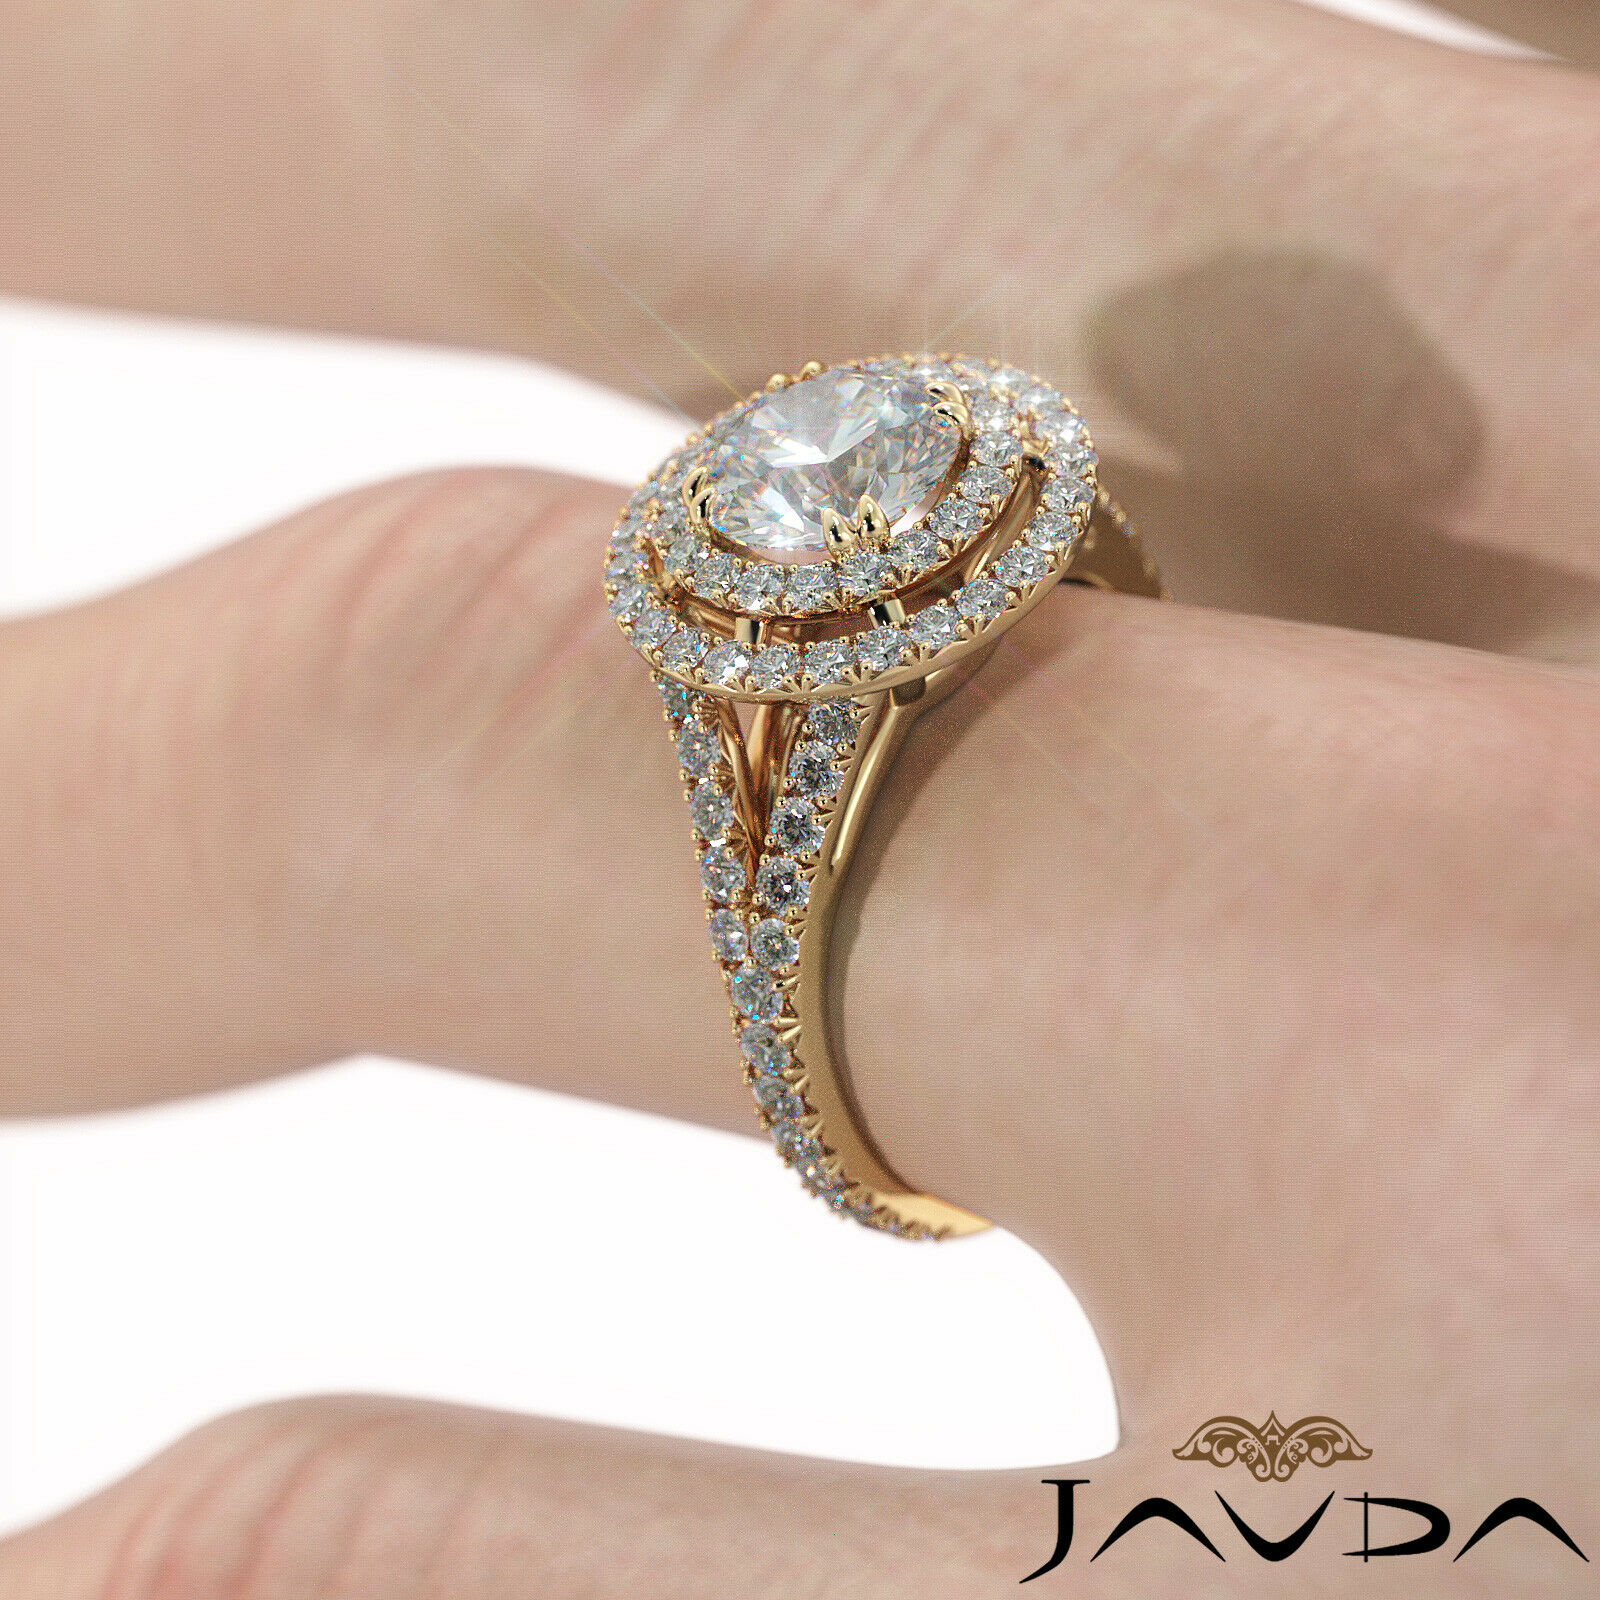 2.05ct French Pave Gala Halo Round Diamond Engagement Ring GIA F-VVS1 White Gold 11